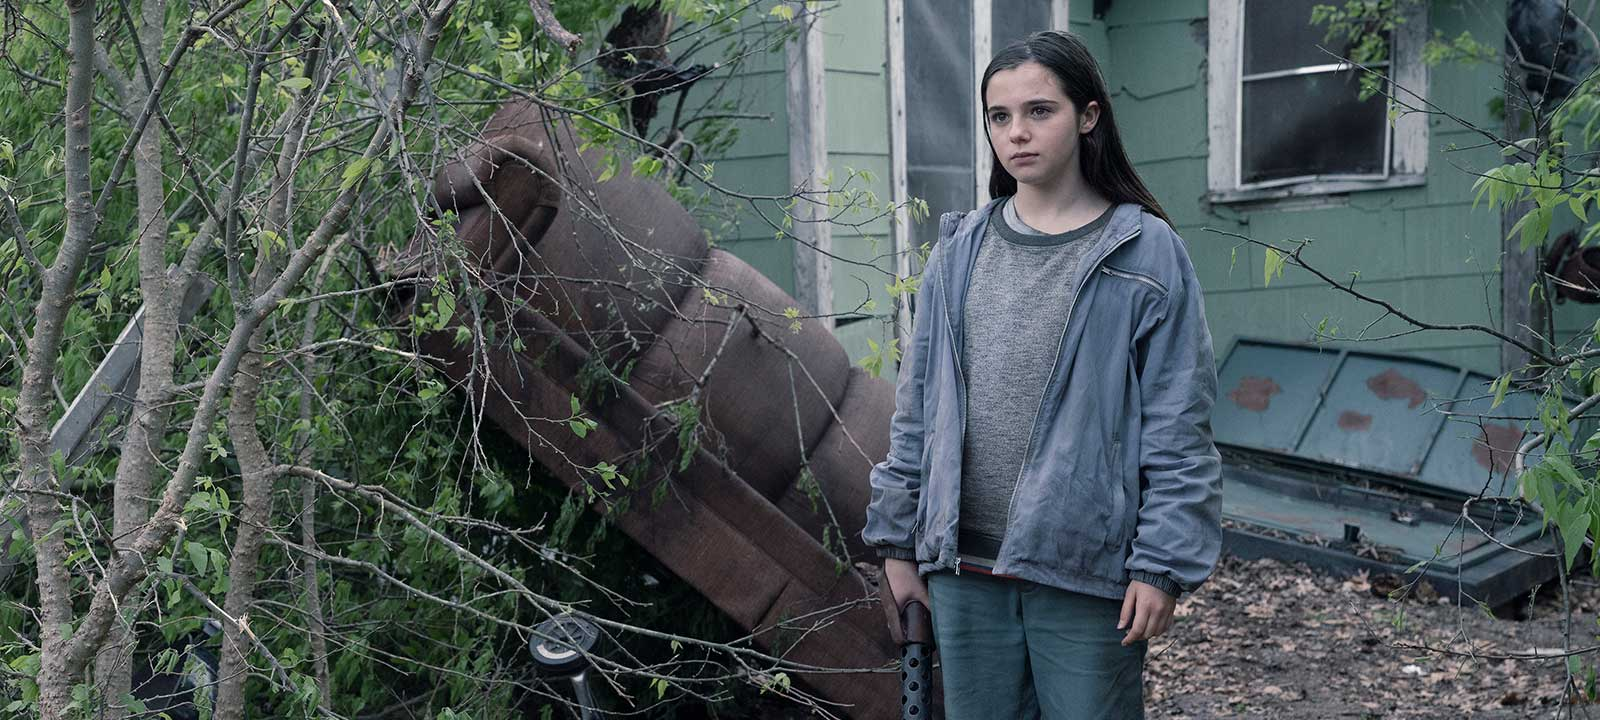 fear-the-walking-dead-episode-410-charlie-nisenson-800×600